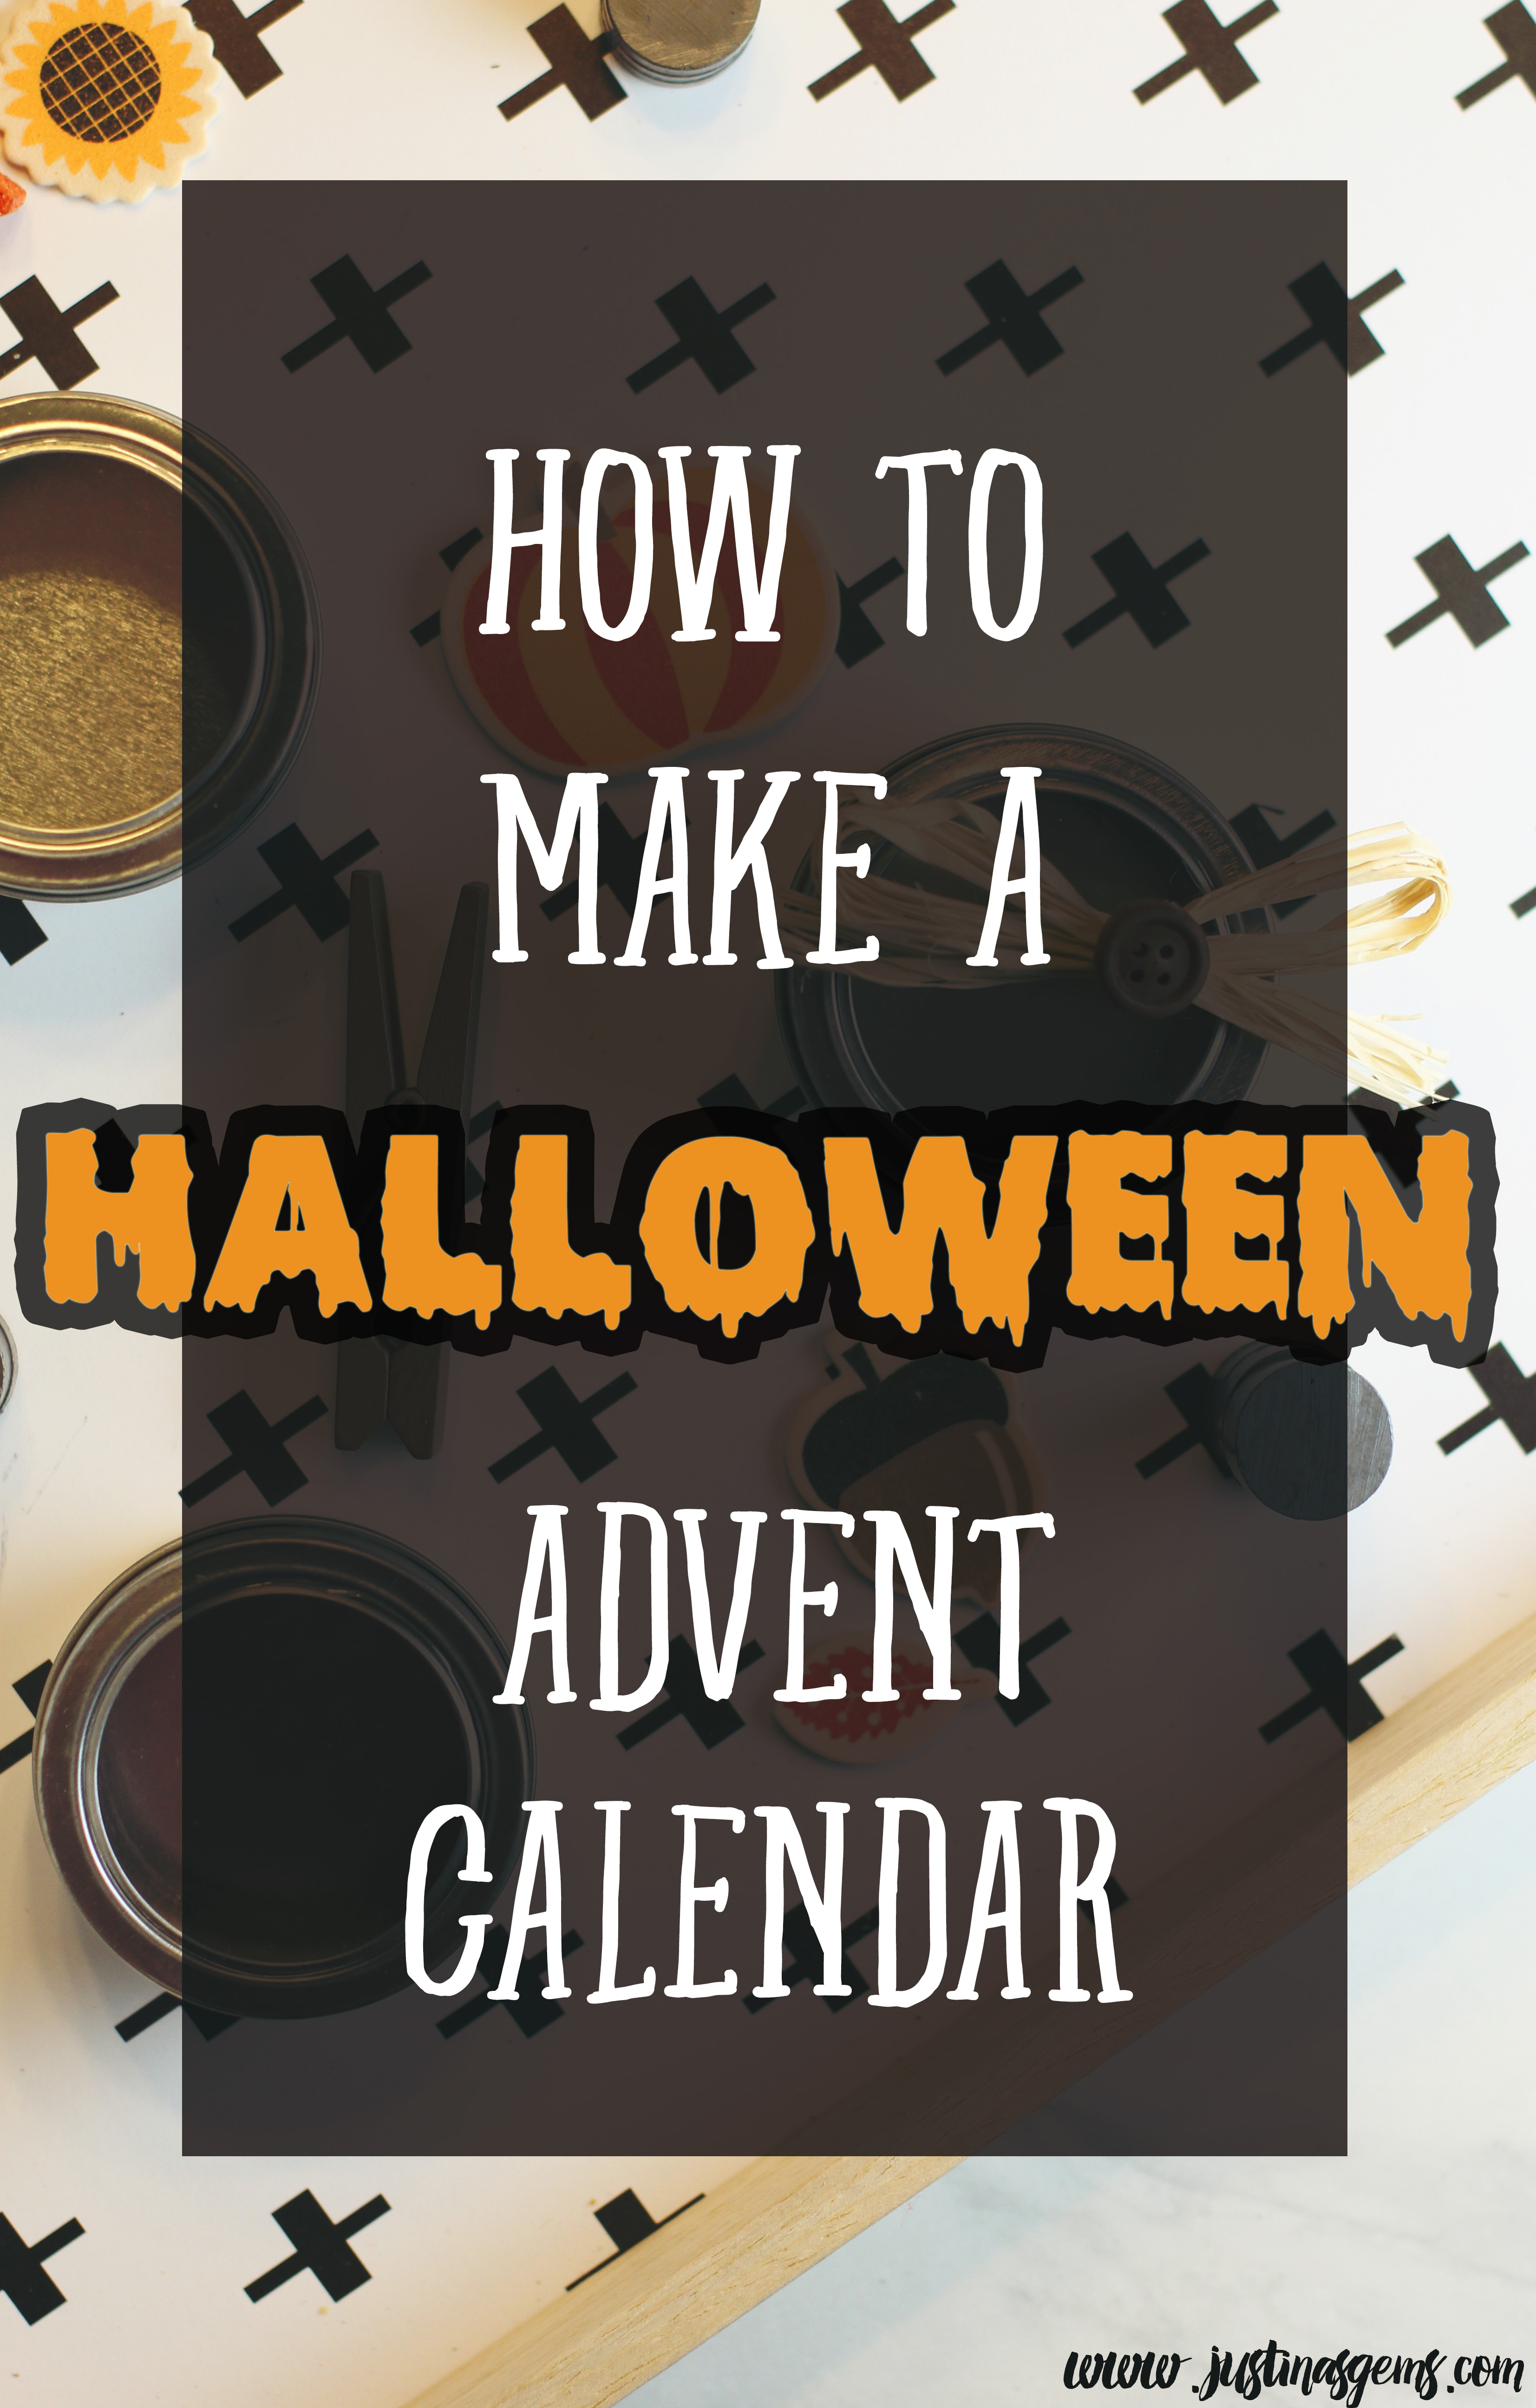 Diy halloween advent calendar justinas gems how to make a halloween advent calendar solutioingenieria Gallery